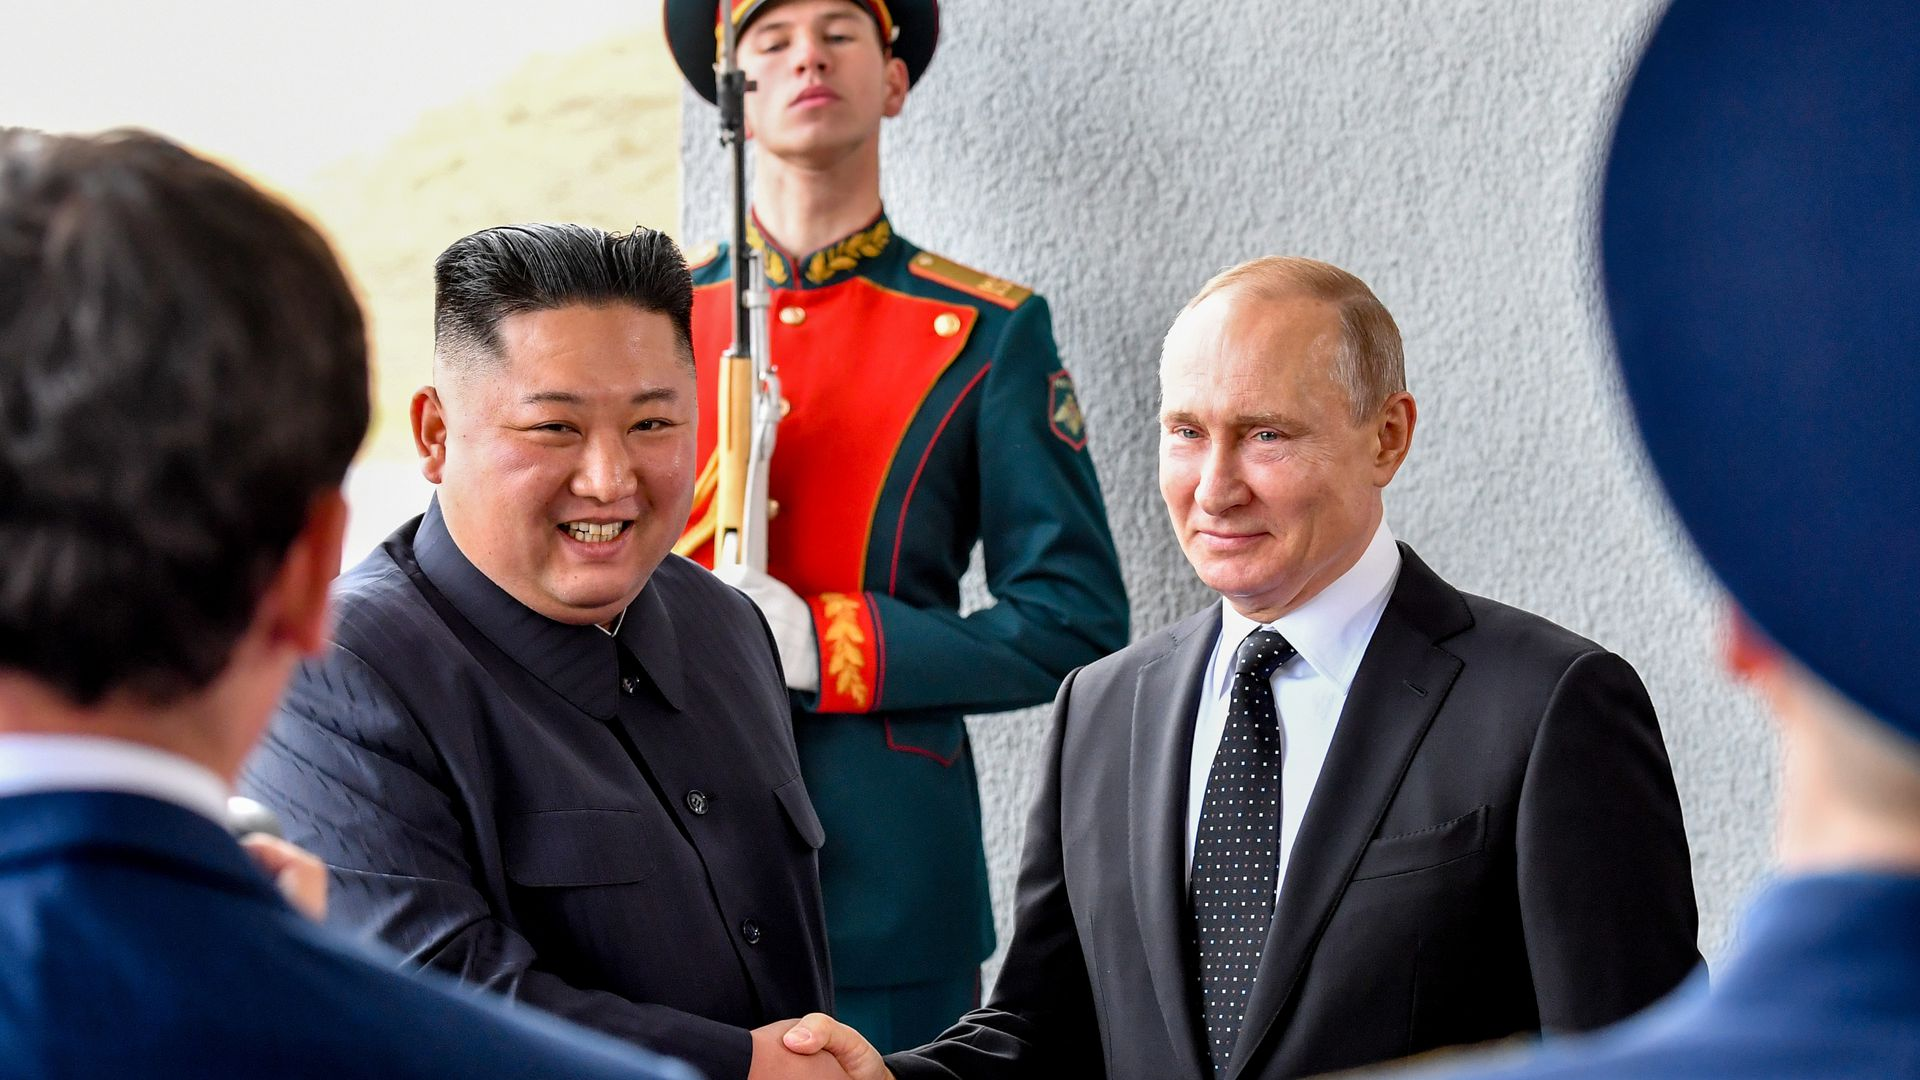 Russian President Vladimir Putin and North Korean leader Kim Jong Un meet for the first time.